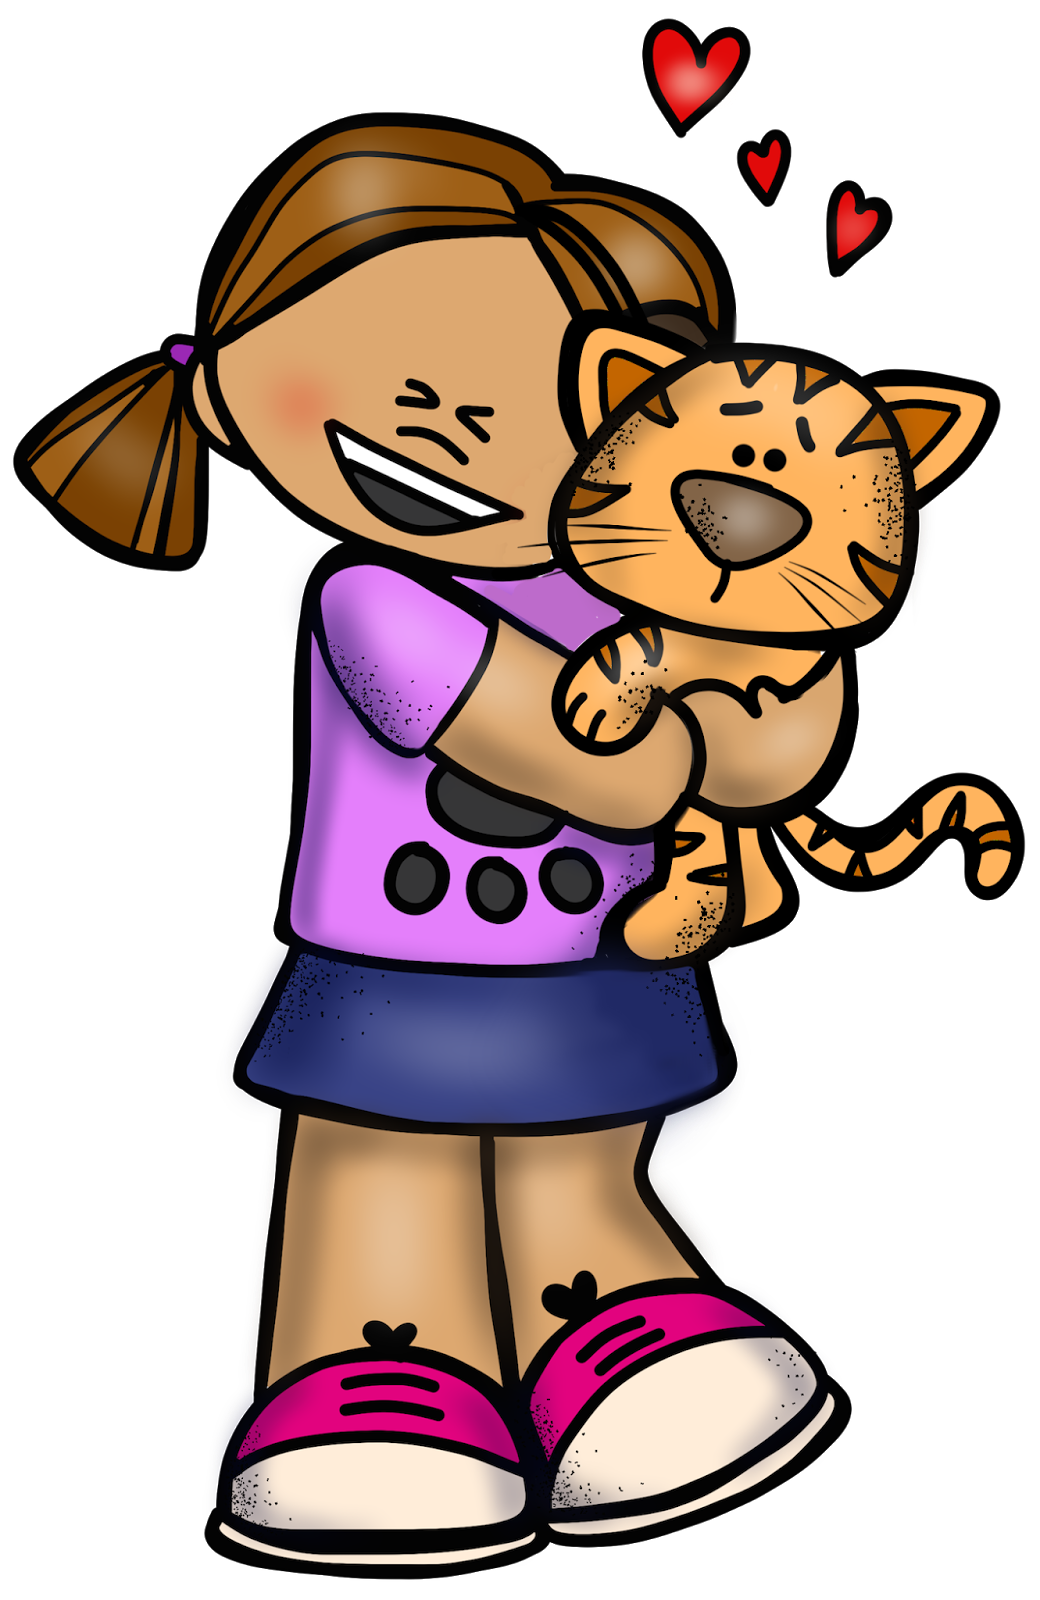 Person clipart pet. On friday i posted